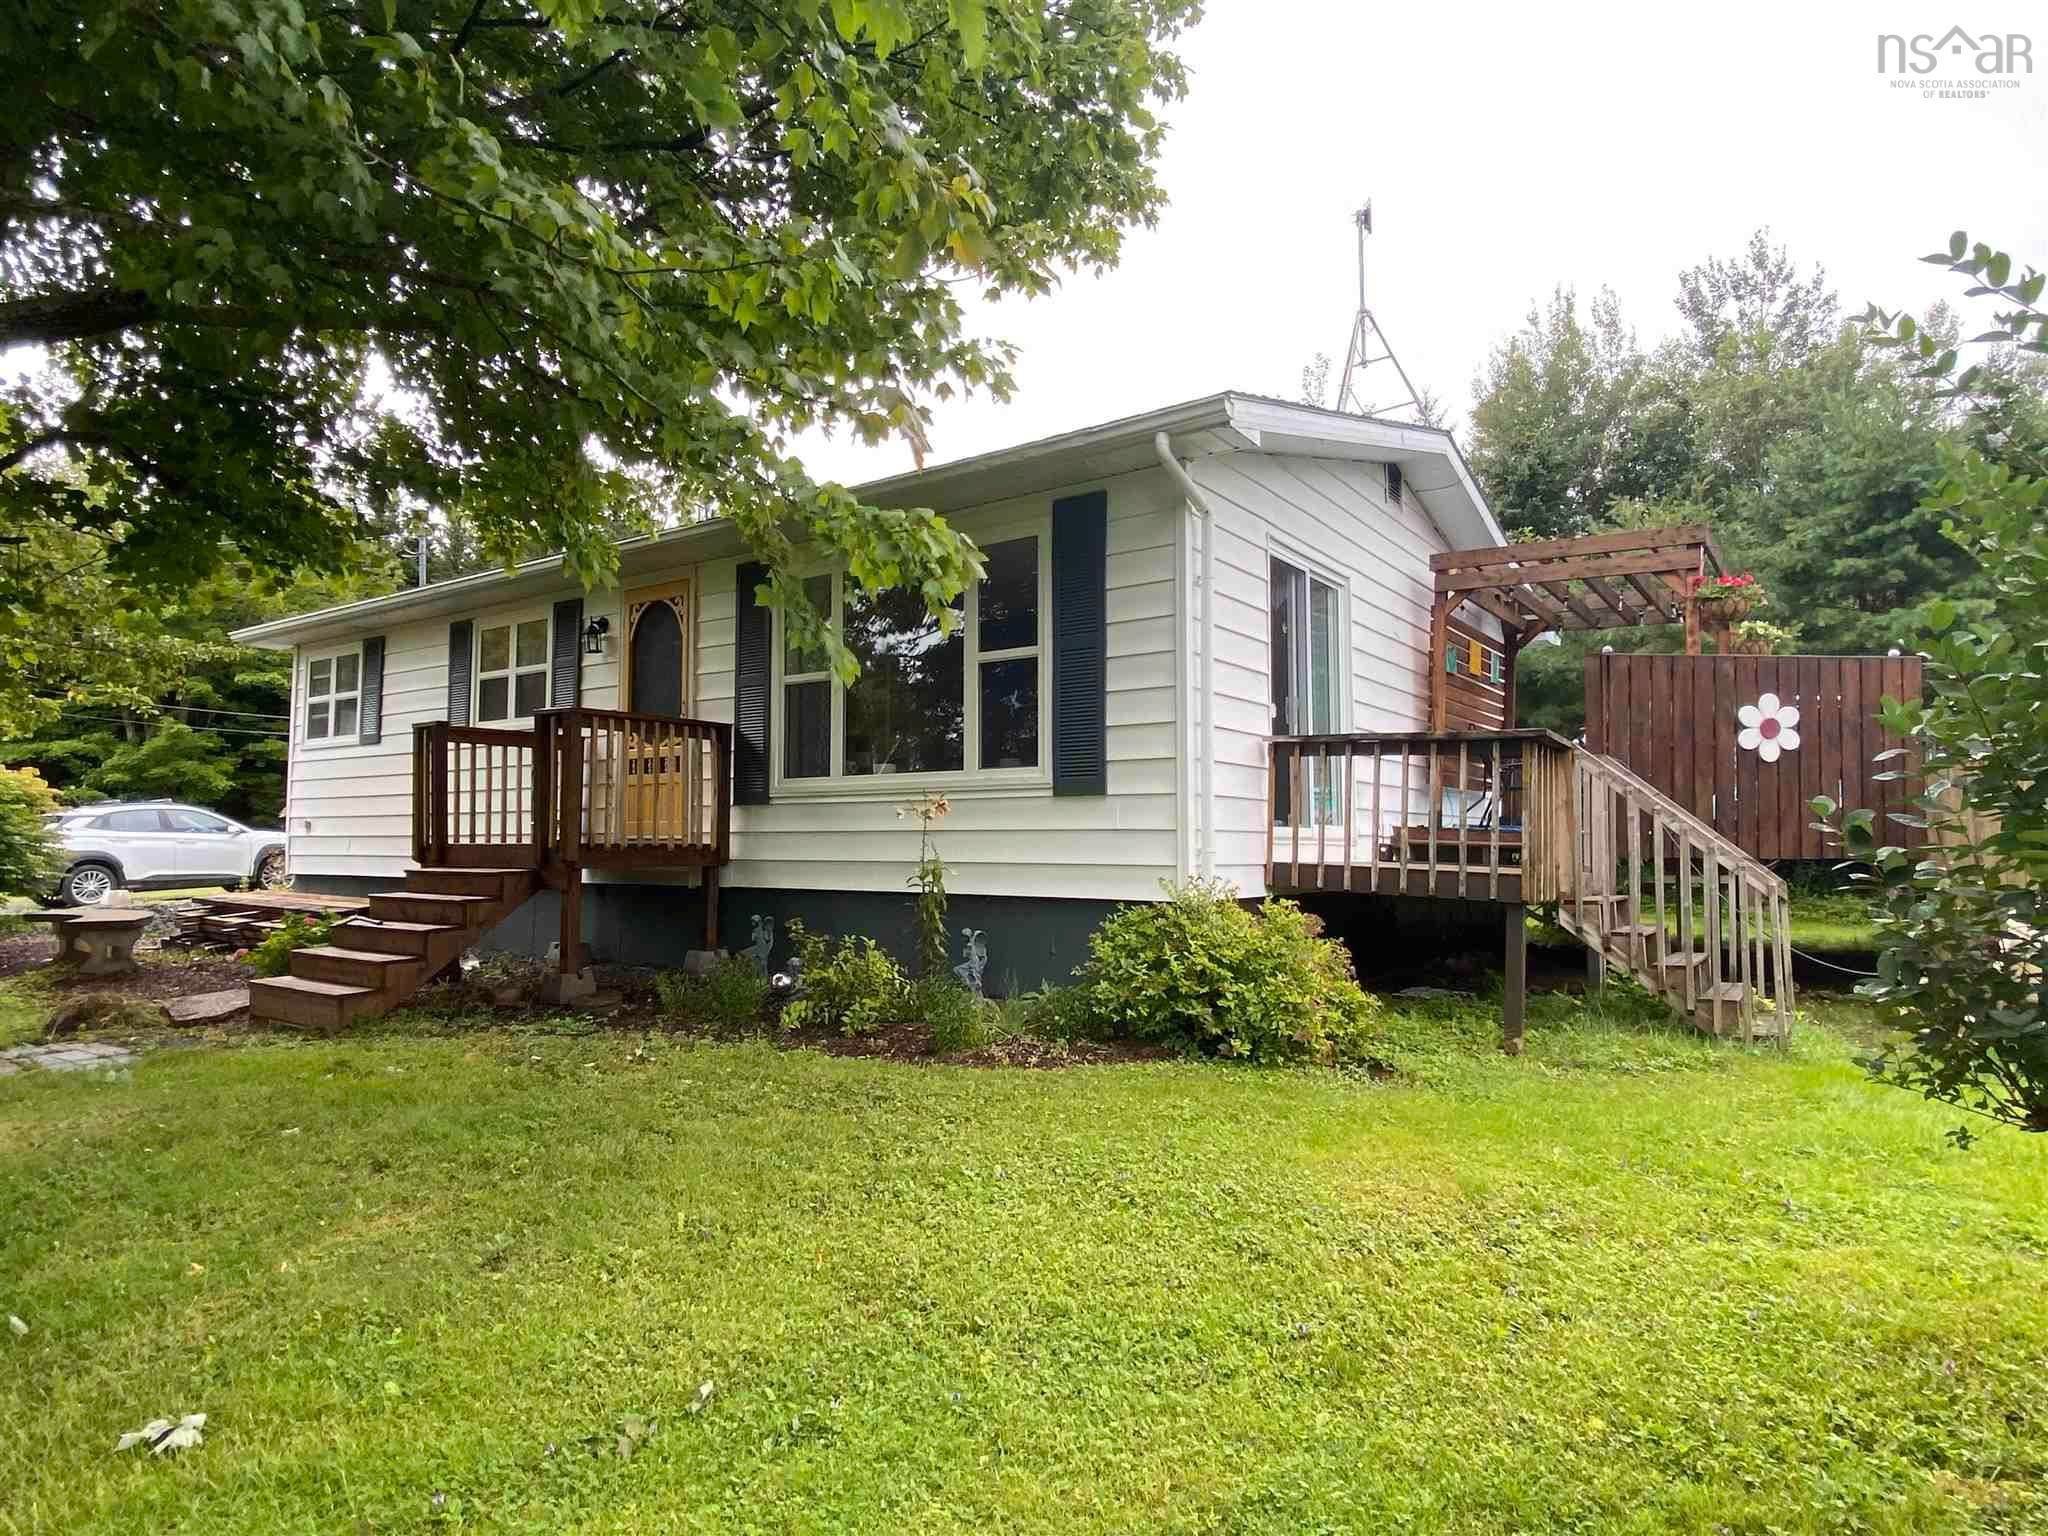 Main Photo: 510 Mount William Road in Mount William: 108-Rural Pictou County Residential for sale (Northern Region)  : MLS®# 202120400